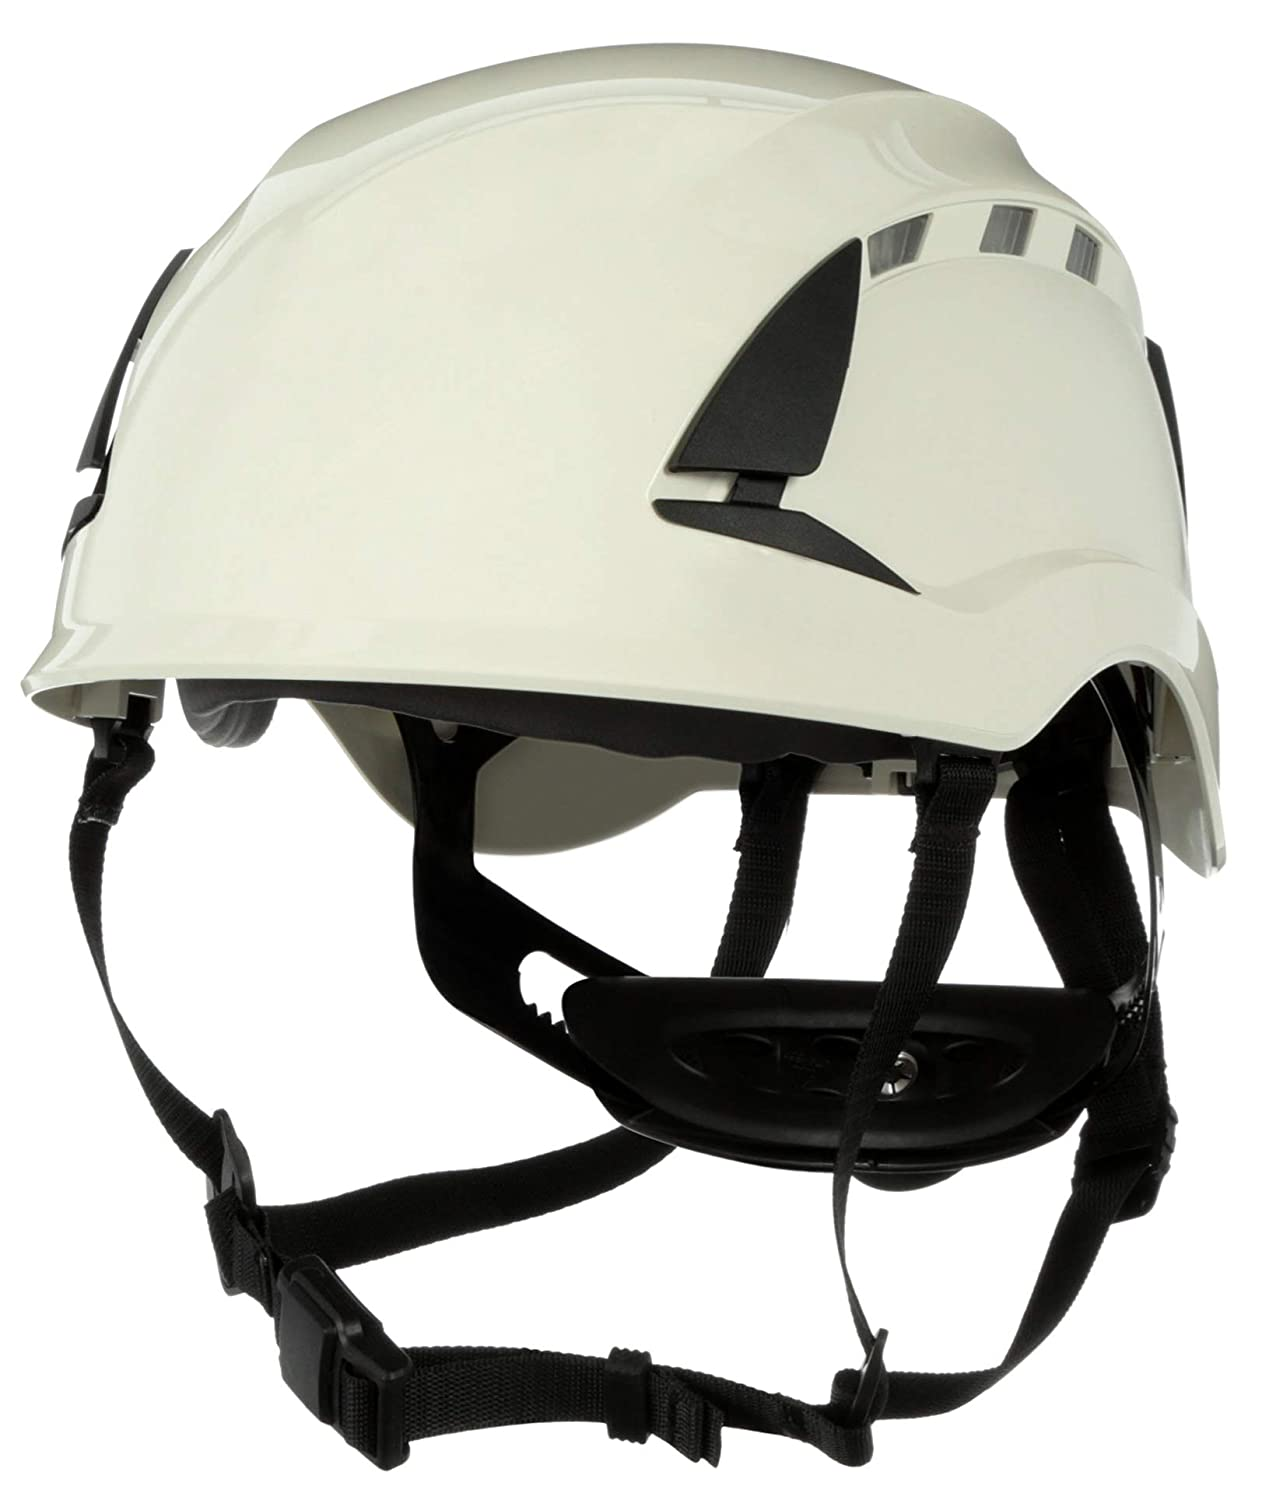 3M SecureFit Safety Helmet/Hard Hat, Climbing Style, Construction, Manufacturing, Forestry, Utilities, Work at Height, X5001V-ANSI, Vented, White